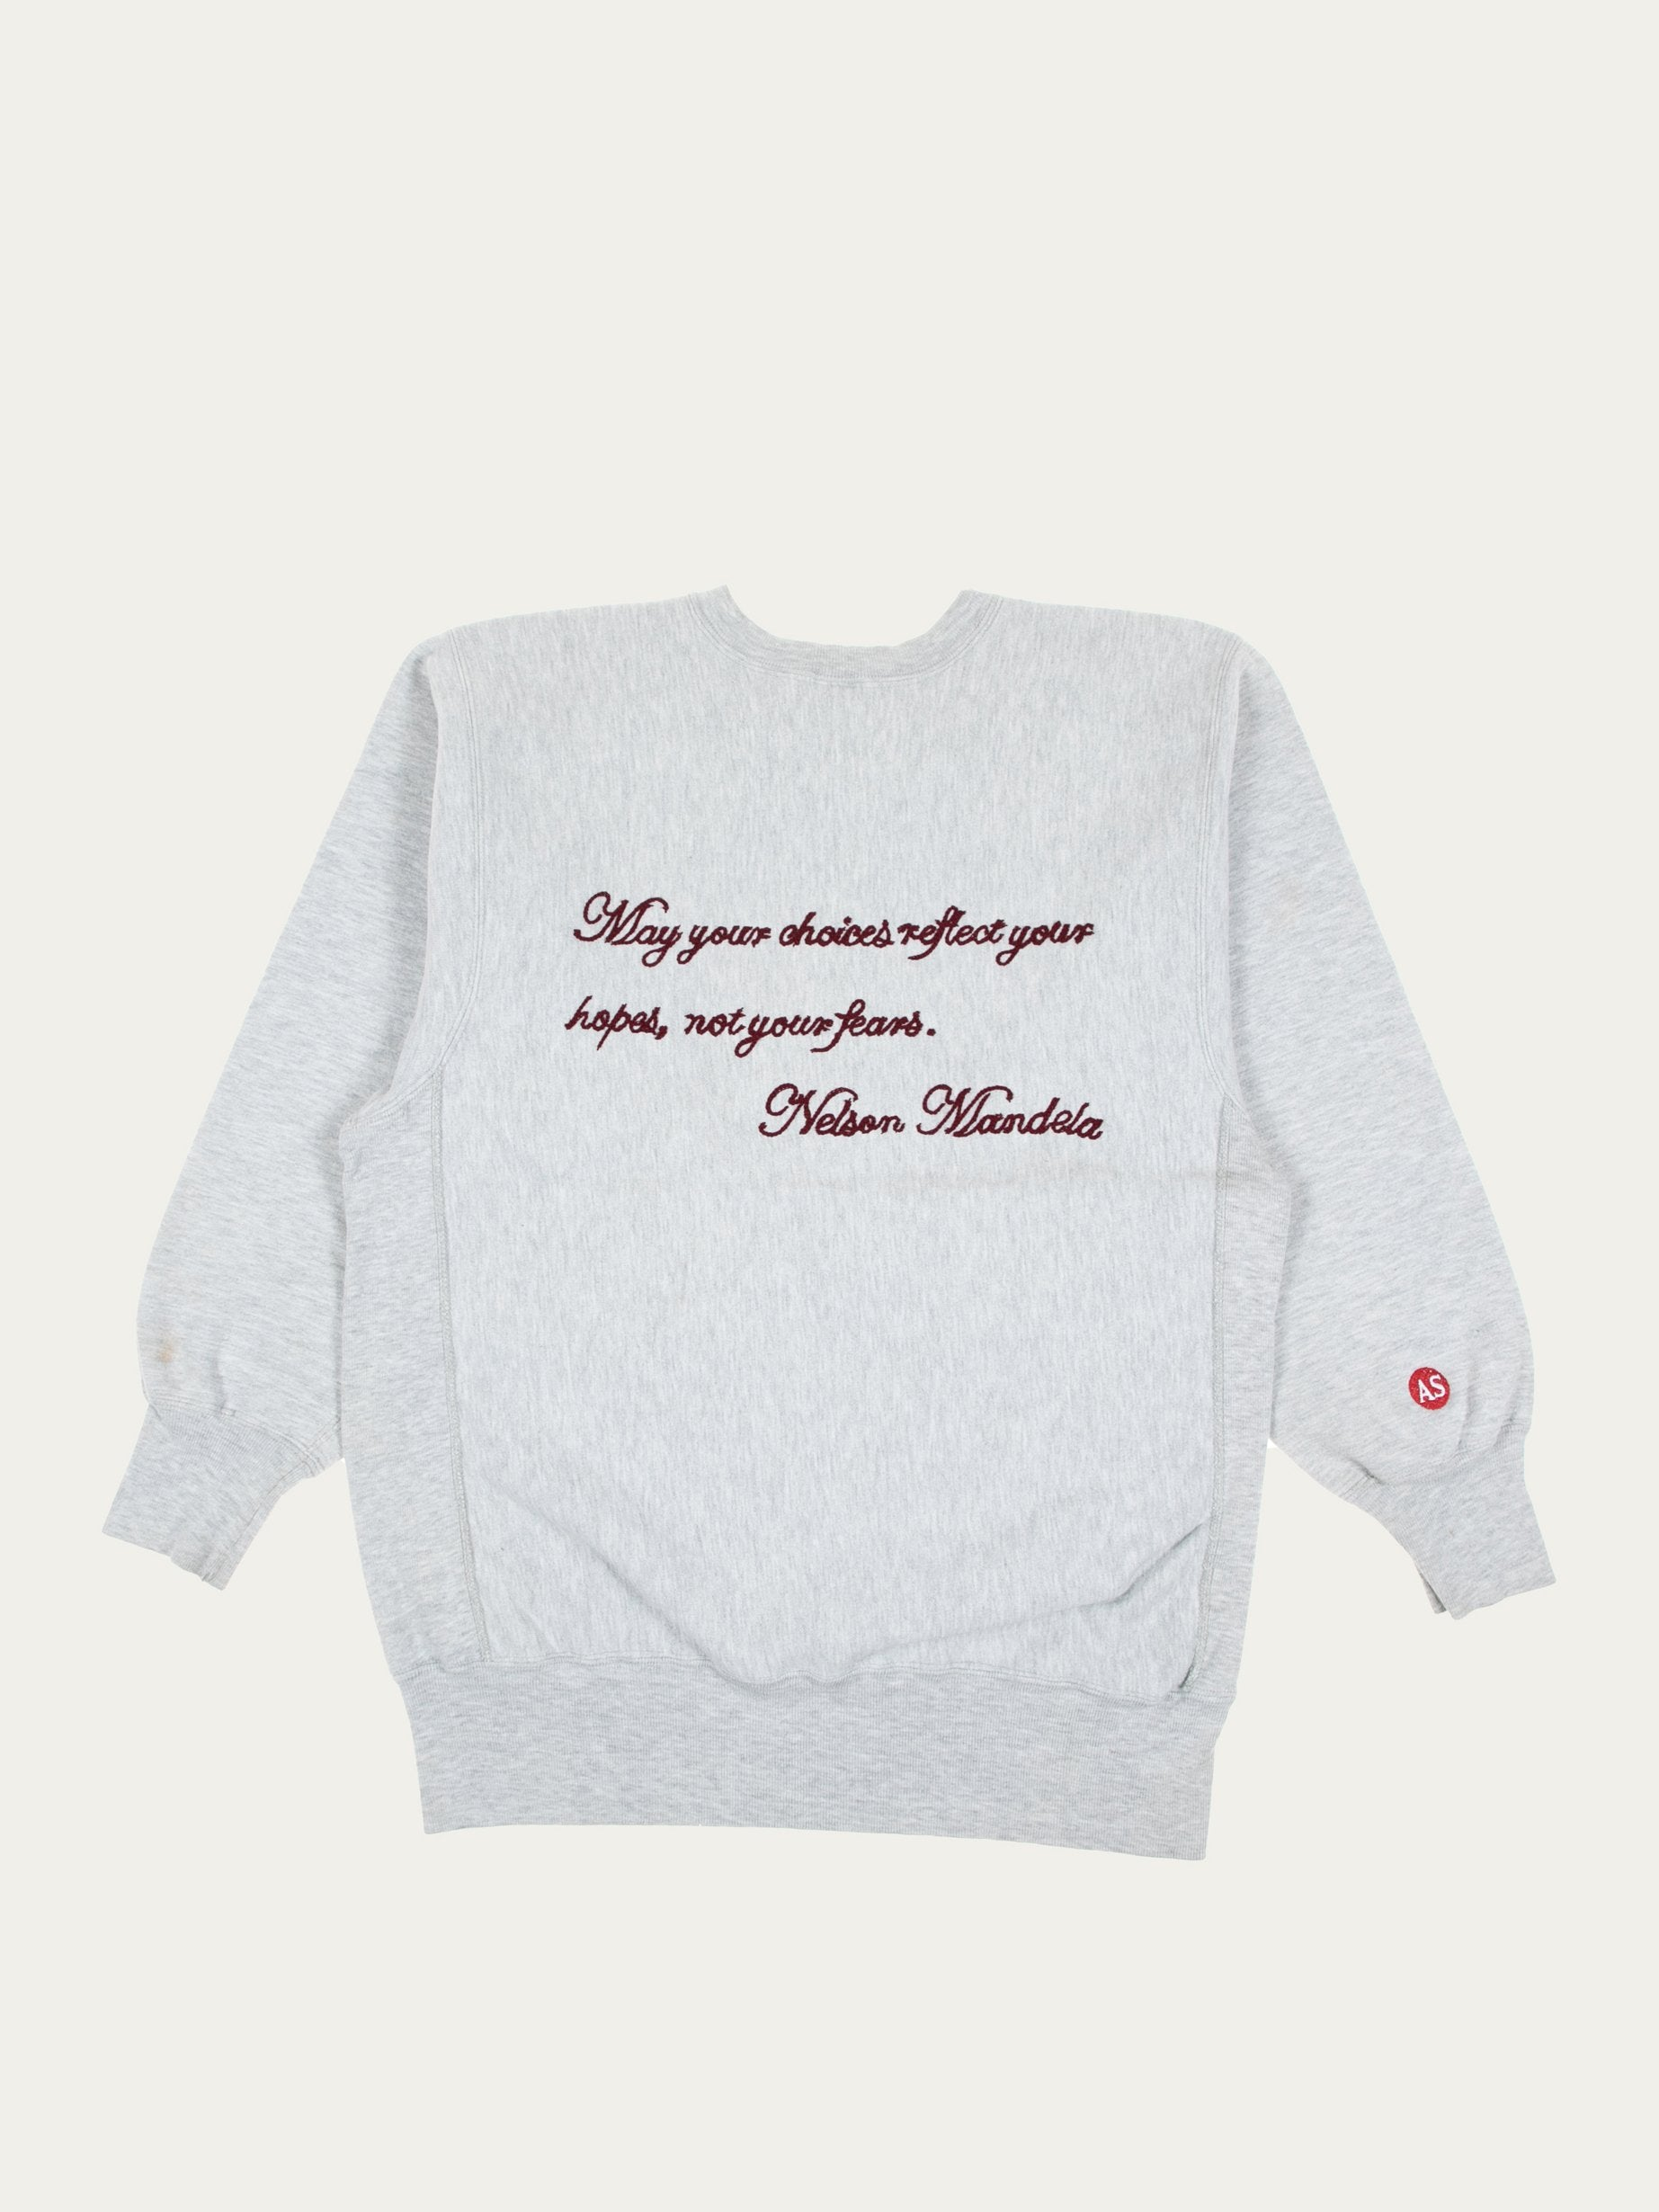 Grey Stone Of Hope Vintage Champion Sweatshirt 2